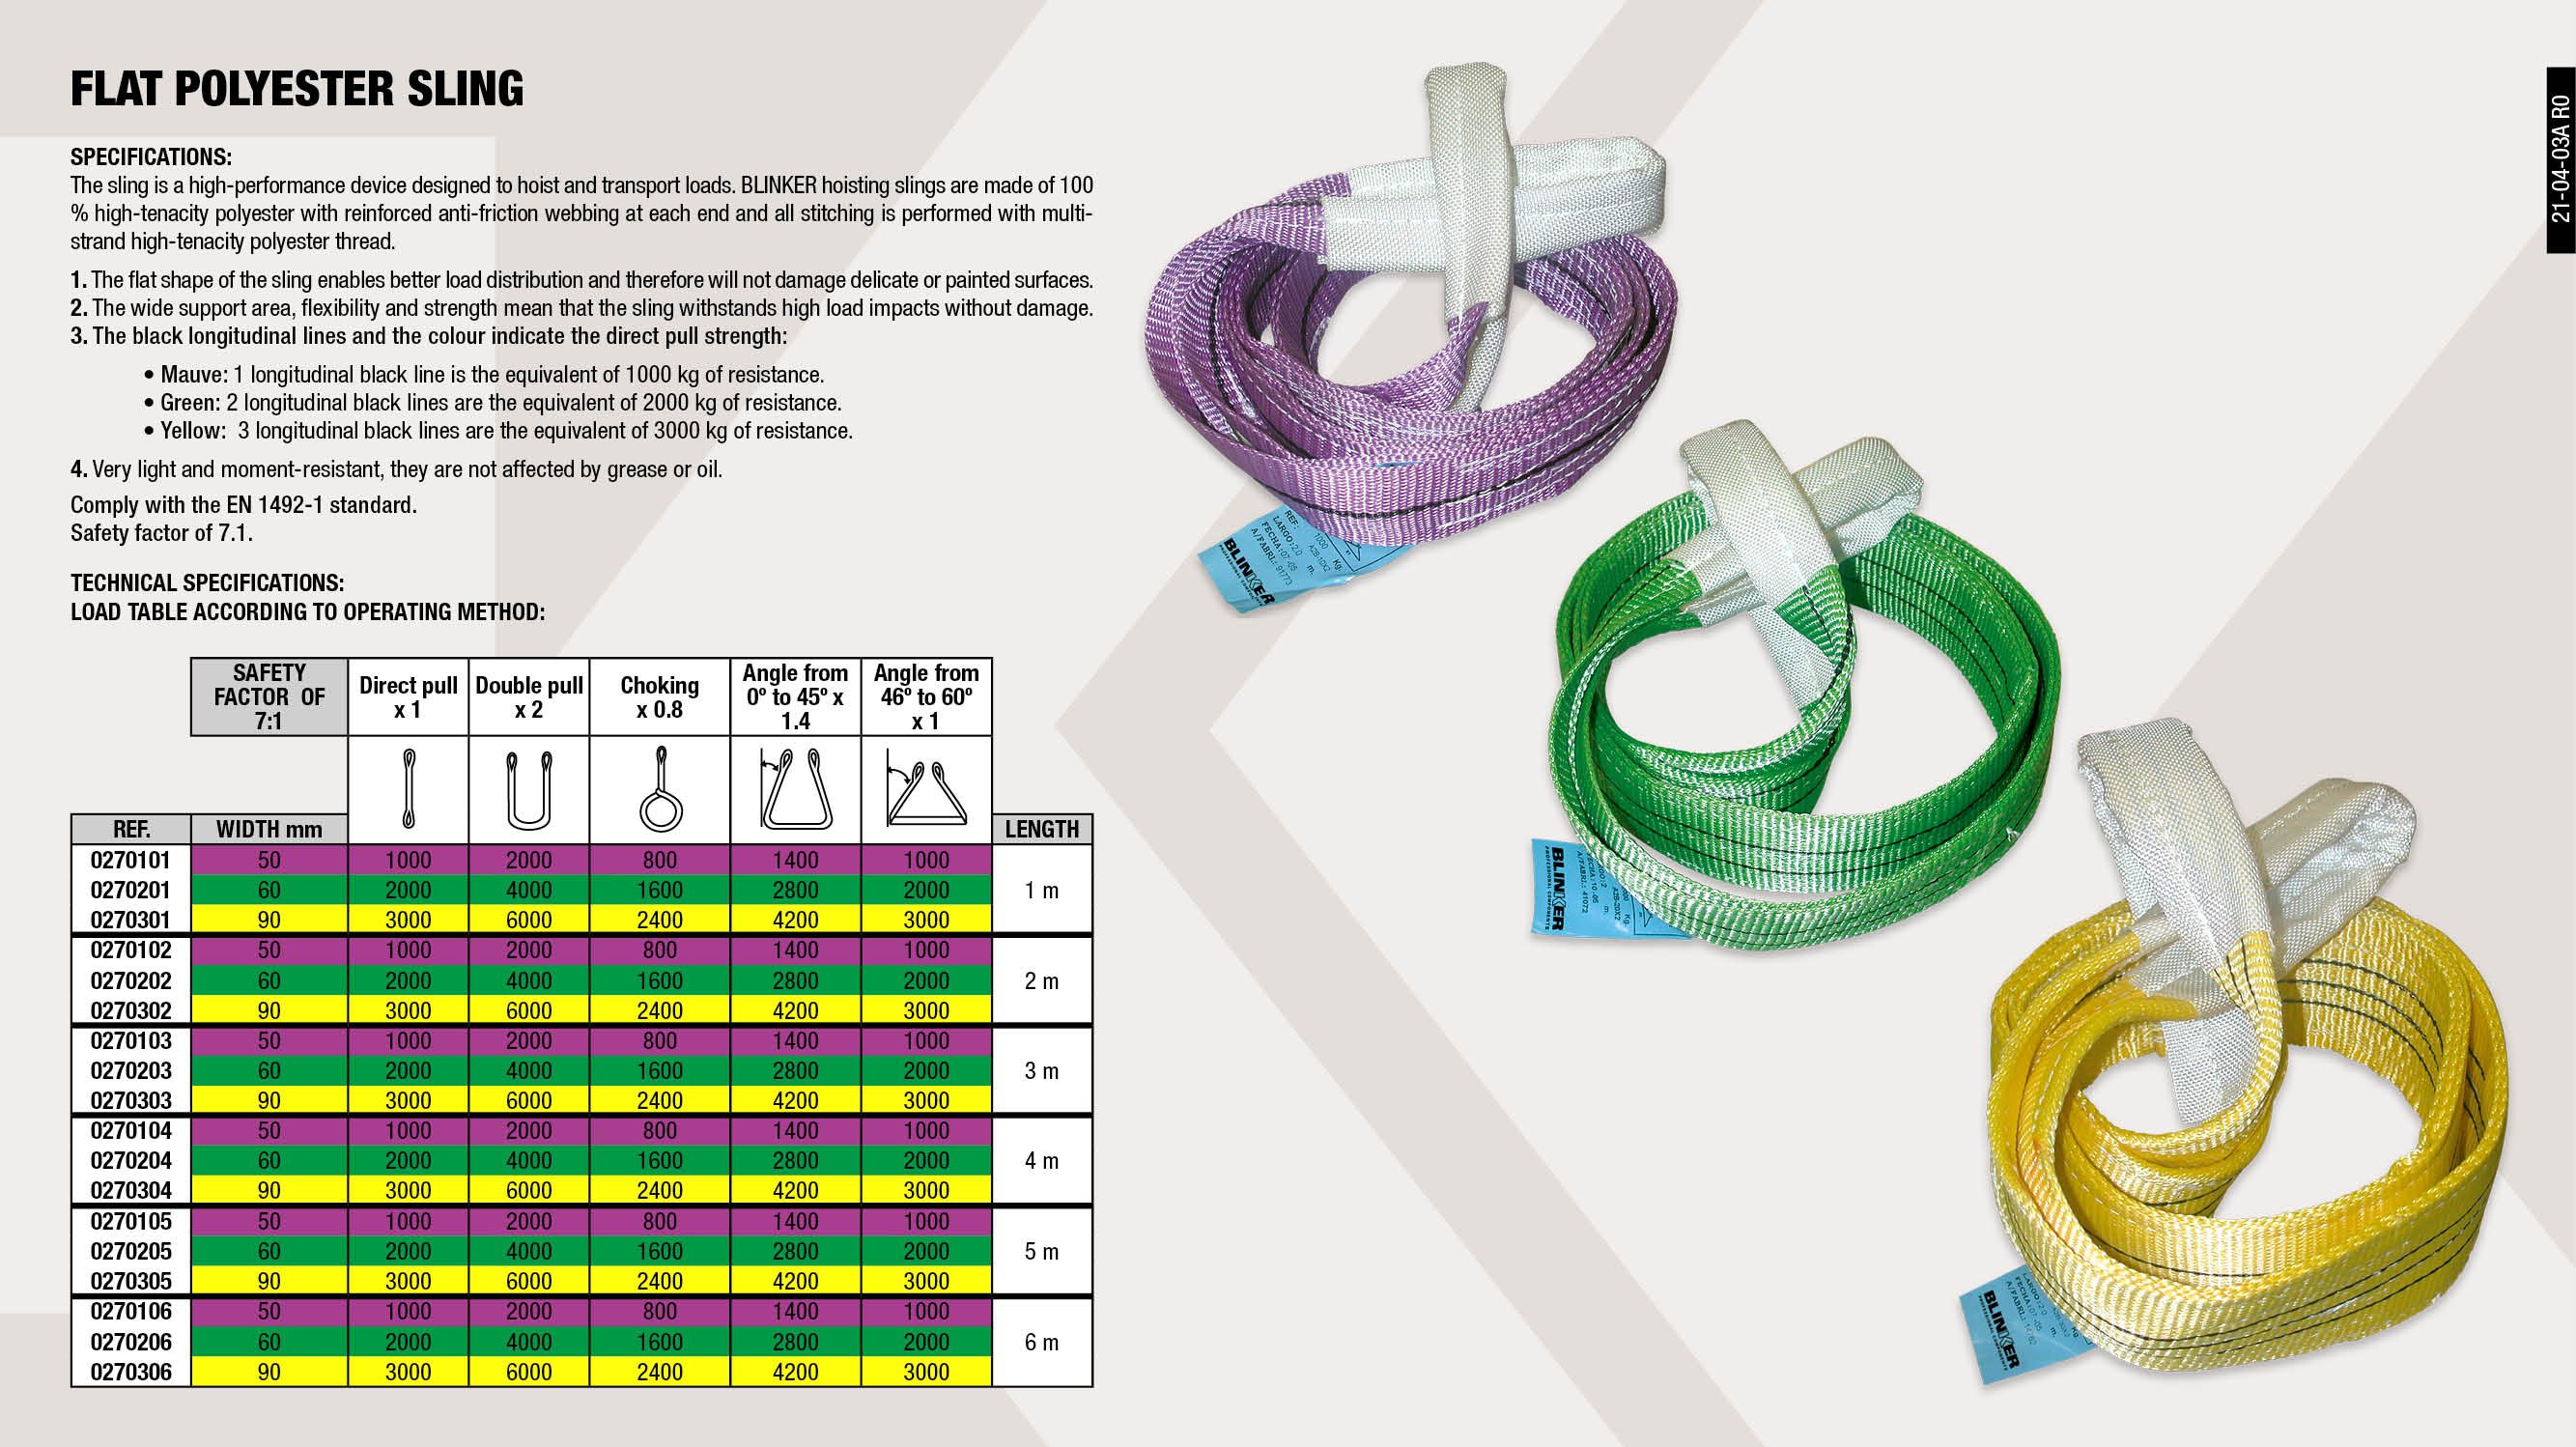 LILAC POLYESTER FLAT SLING 2M                               ,  LILAC POLYESTER FLAT SLING 5M                               ,  GREEN POLYESTER FLAT SLING 5M                               ,  YELLOW POLYESTER FLAT SLING 3M                              ,  POLYESTER FLAT SLING 1M GREEN                               ,  LILAC POLYESTER FLAT SLING 3M                               ,  GREEN POLYESTER FLAT SLING 4M                               ,  LILAC POLYESTER FLAT SLING 4M                               ,  LILAC POLYESTER FLAT SLING 6M                               ,  GREEN POLYESTER FLAT SLING 2M                               ,  YELLOW POLYESTER FLAT SLING 2M                              ,  YELLOW POLYESTER FLAT SLING 4M                              ,  GREEN POLYESTER FLAT SLING 6M                               ,  POLYESTER FLAT SLING 1M YELLOW                              ,  YELLOW POLYESTER FLAT SLING 5M                              ,  POLYESTER FLAT SLING 1M PURPLE                              ,  YELLOW POLYESTER FLAT SLING 6M                              ,  GREEN POLYESTER FLAT SLING 3M                               ,